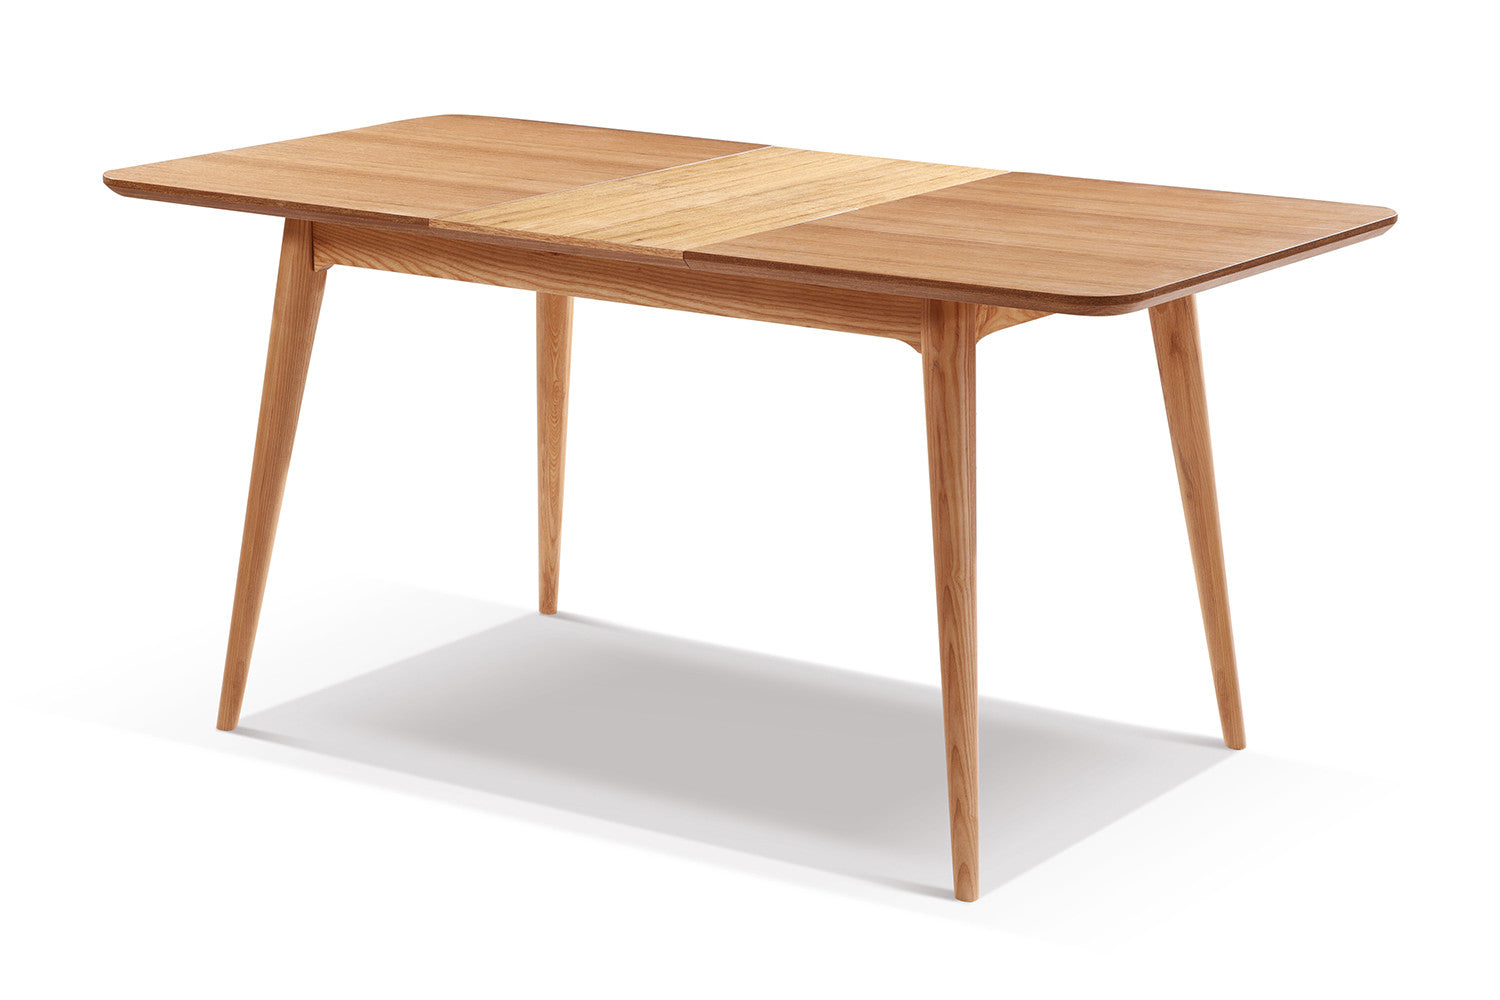 Table de salle manger extensible en bois adda dewarens for Table manger rallonge